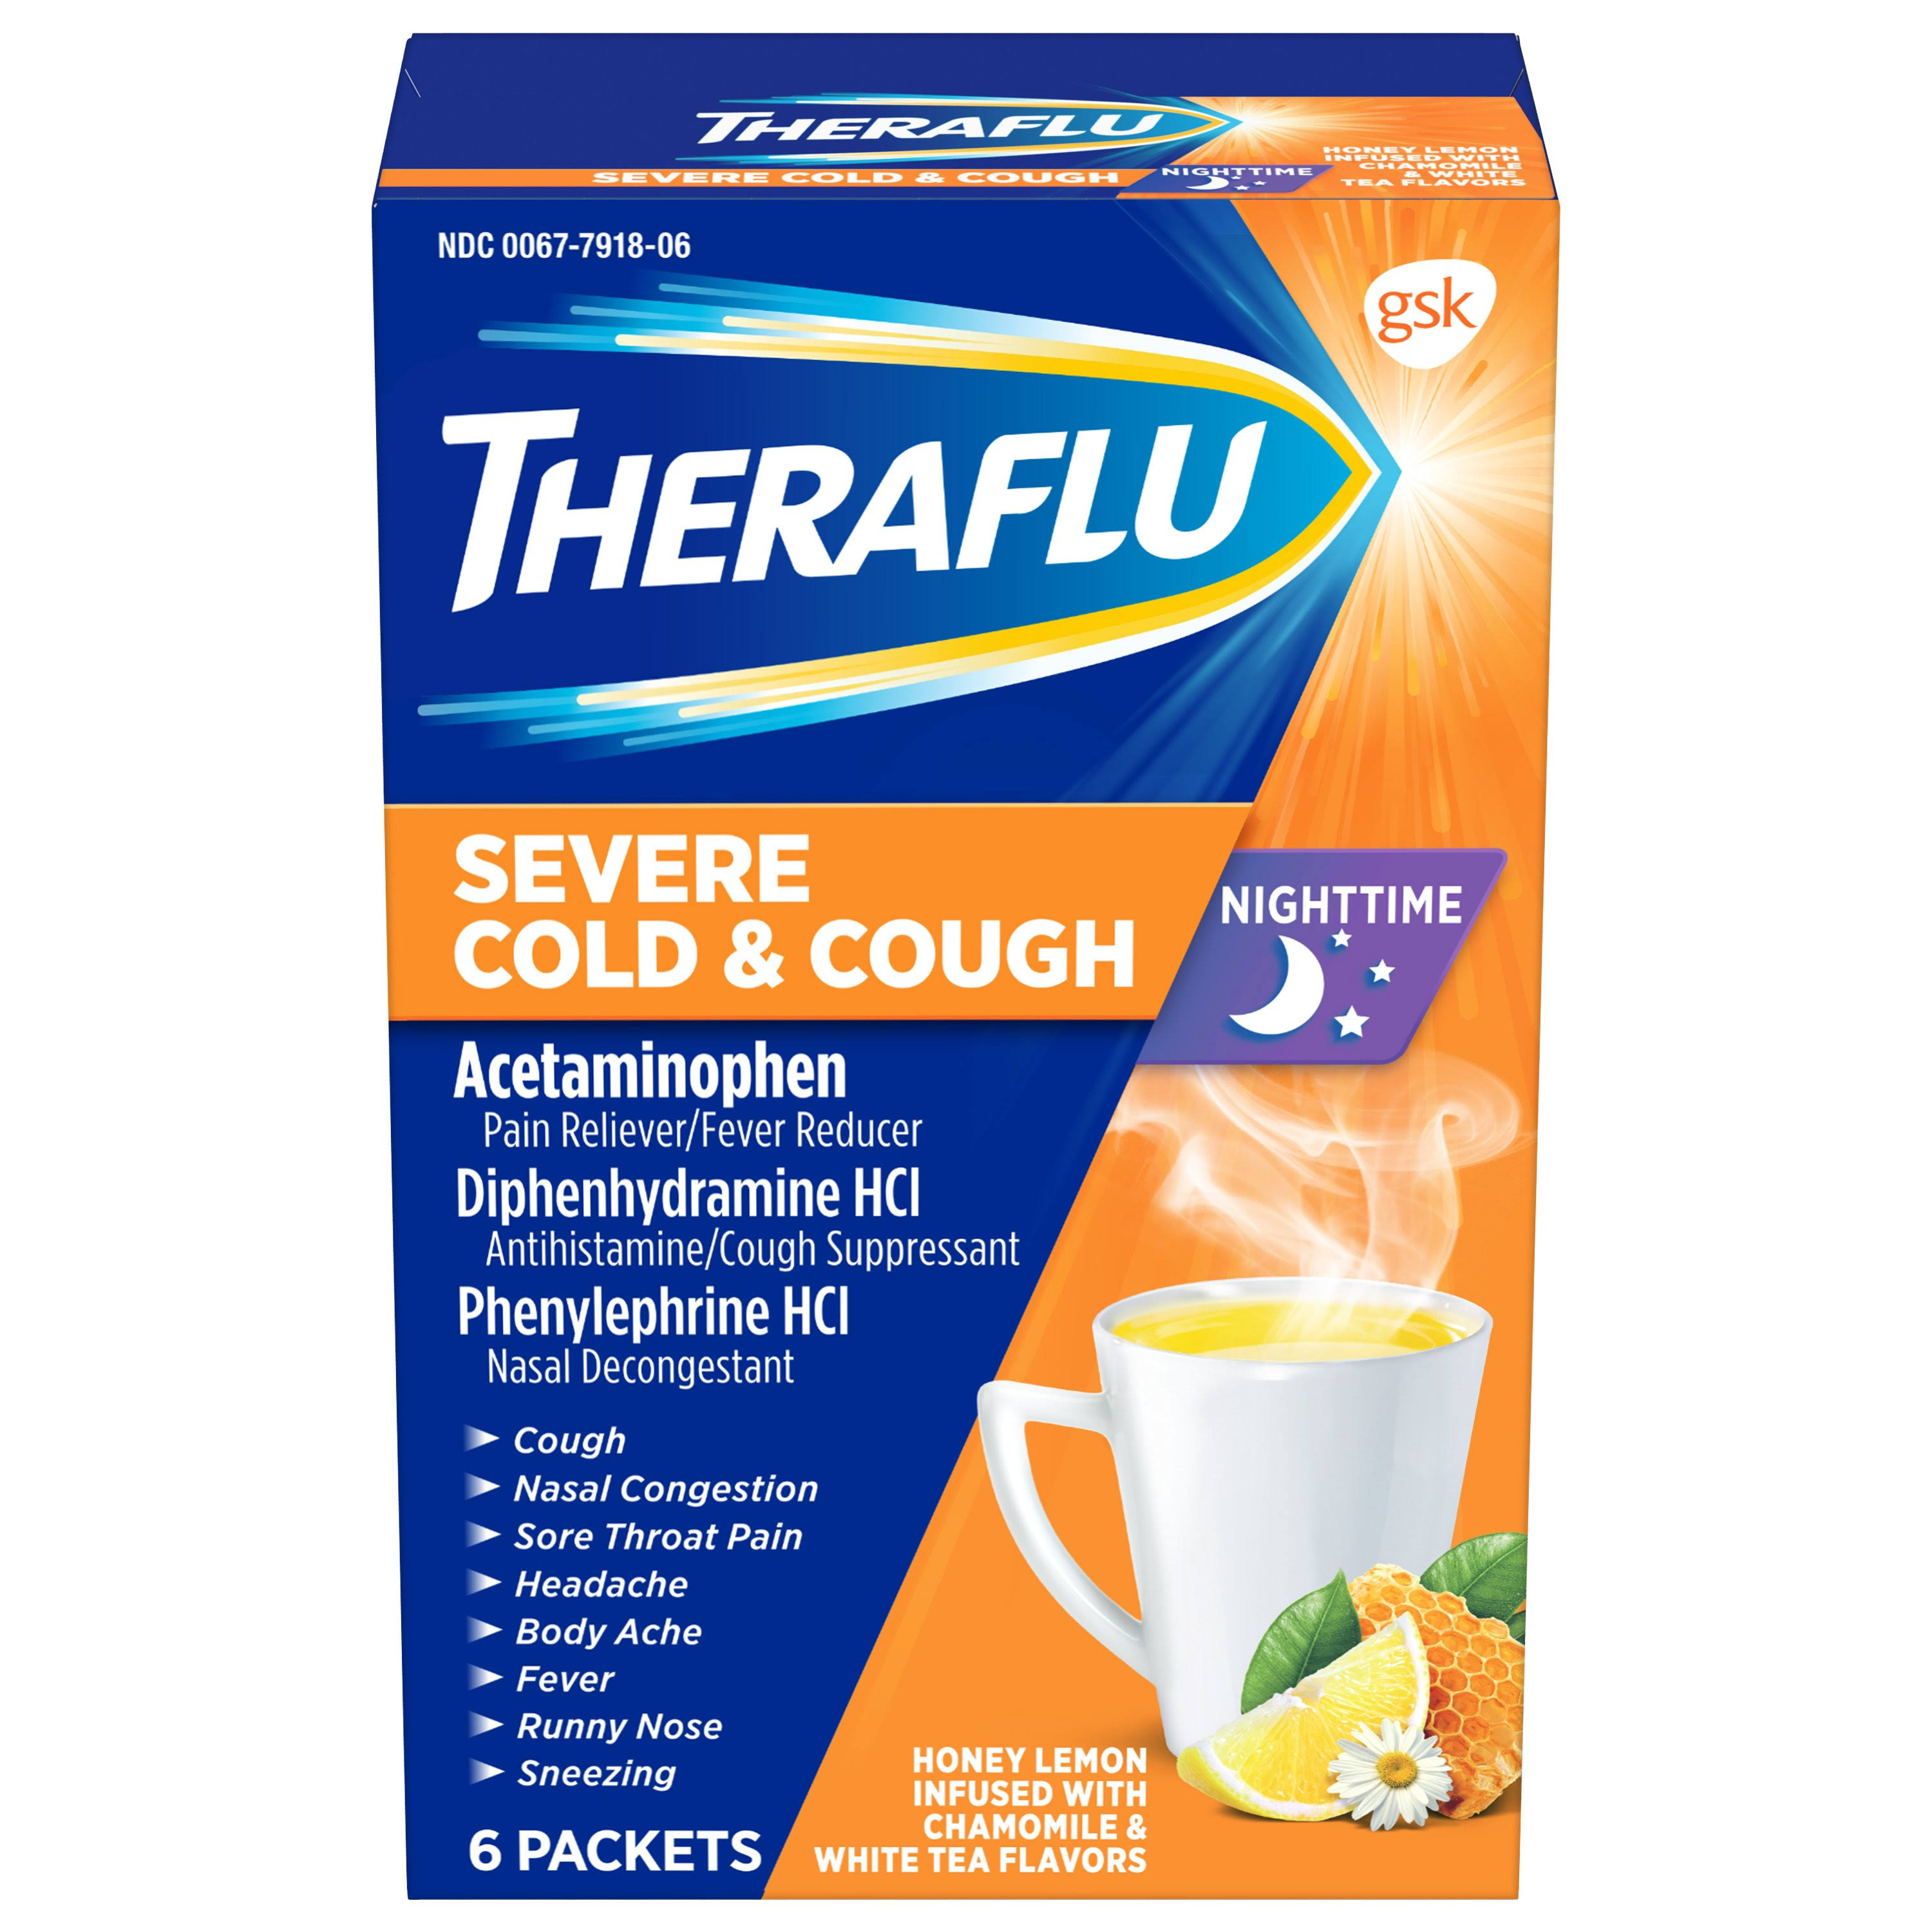 Theraflu Nighttime Honey Lemon Severe Cold and Cough Packets - 6pk